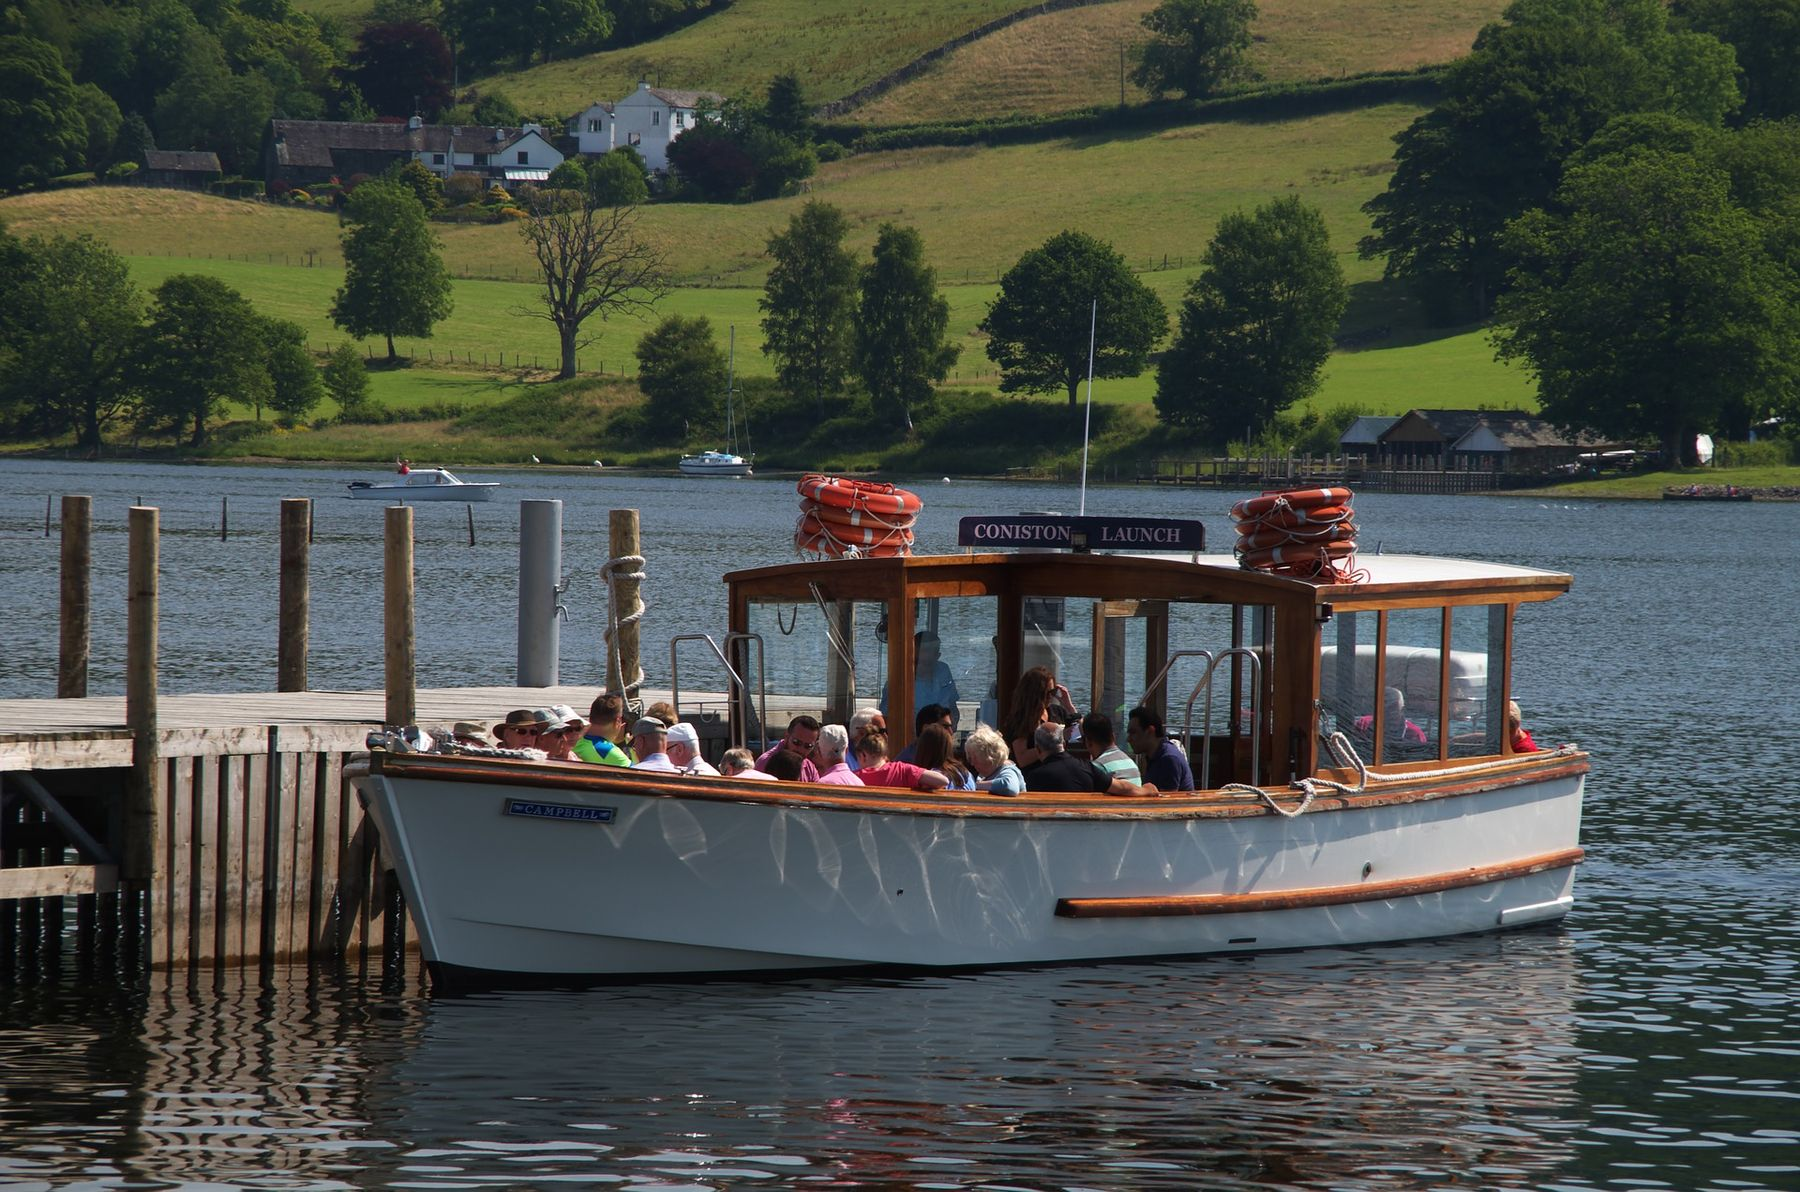 Tourists sitting on the Coniston Launch boat at the dock, about to take a trip on Coniston Water.